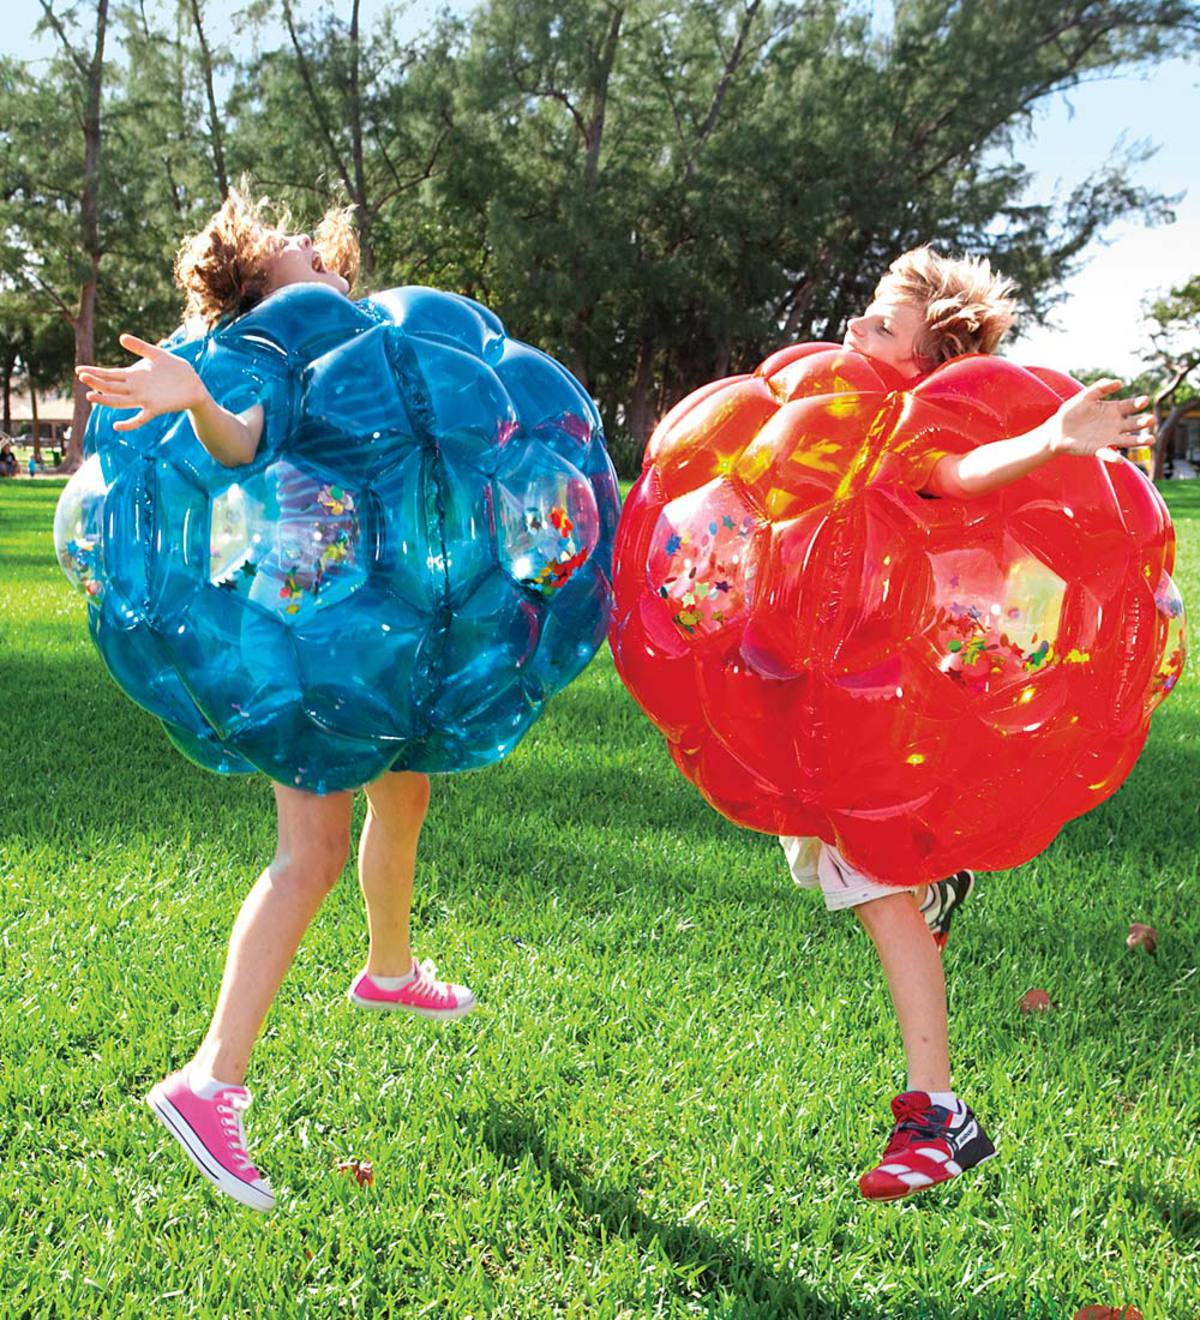 Bright Lights BBOP Inflatable Bouncing Ball